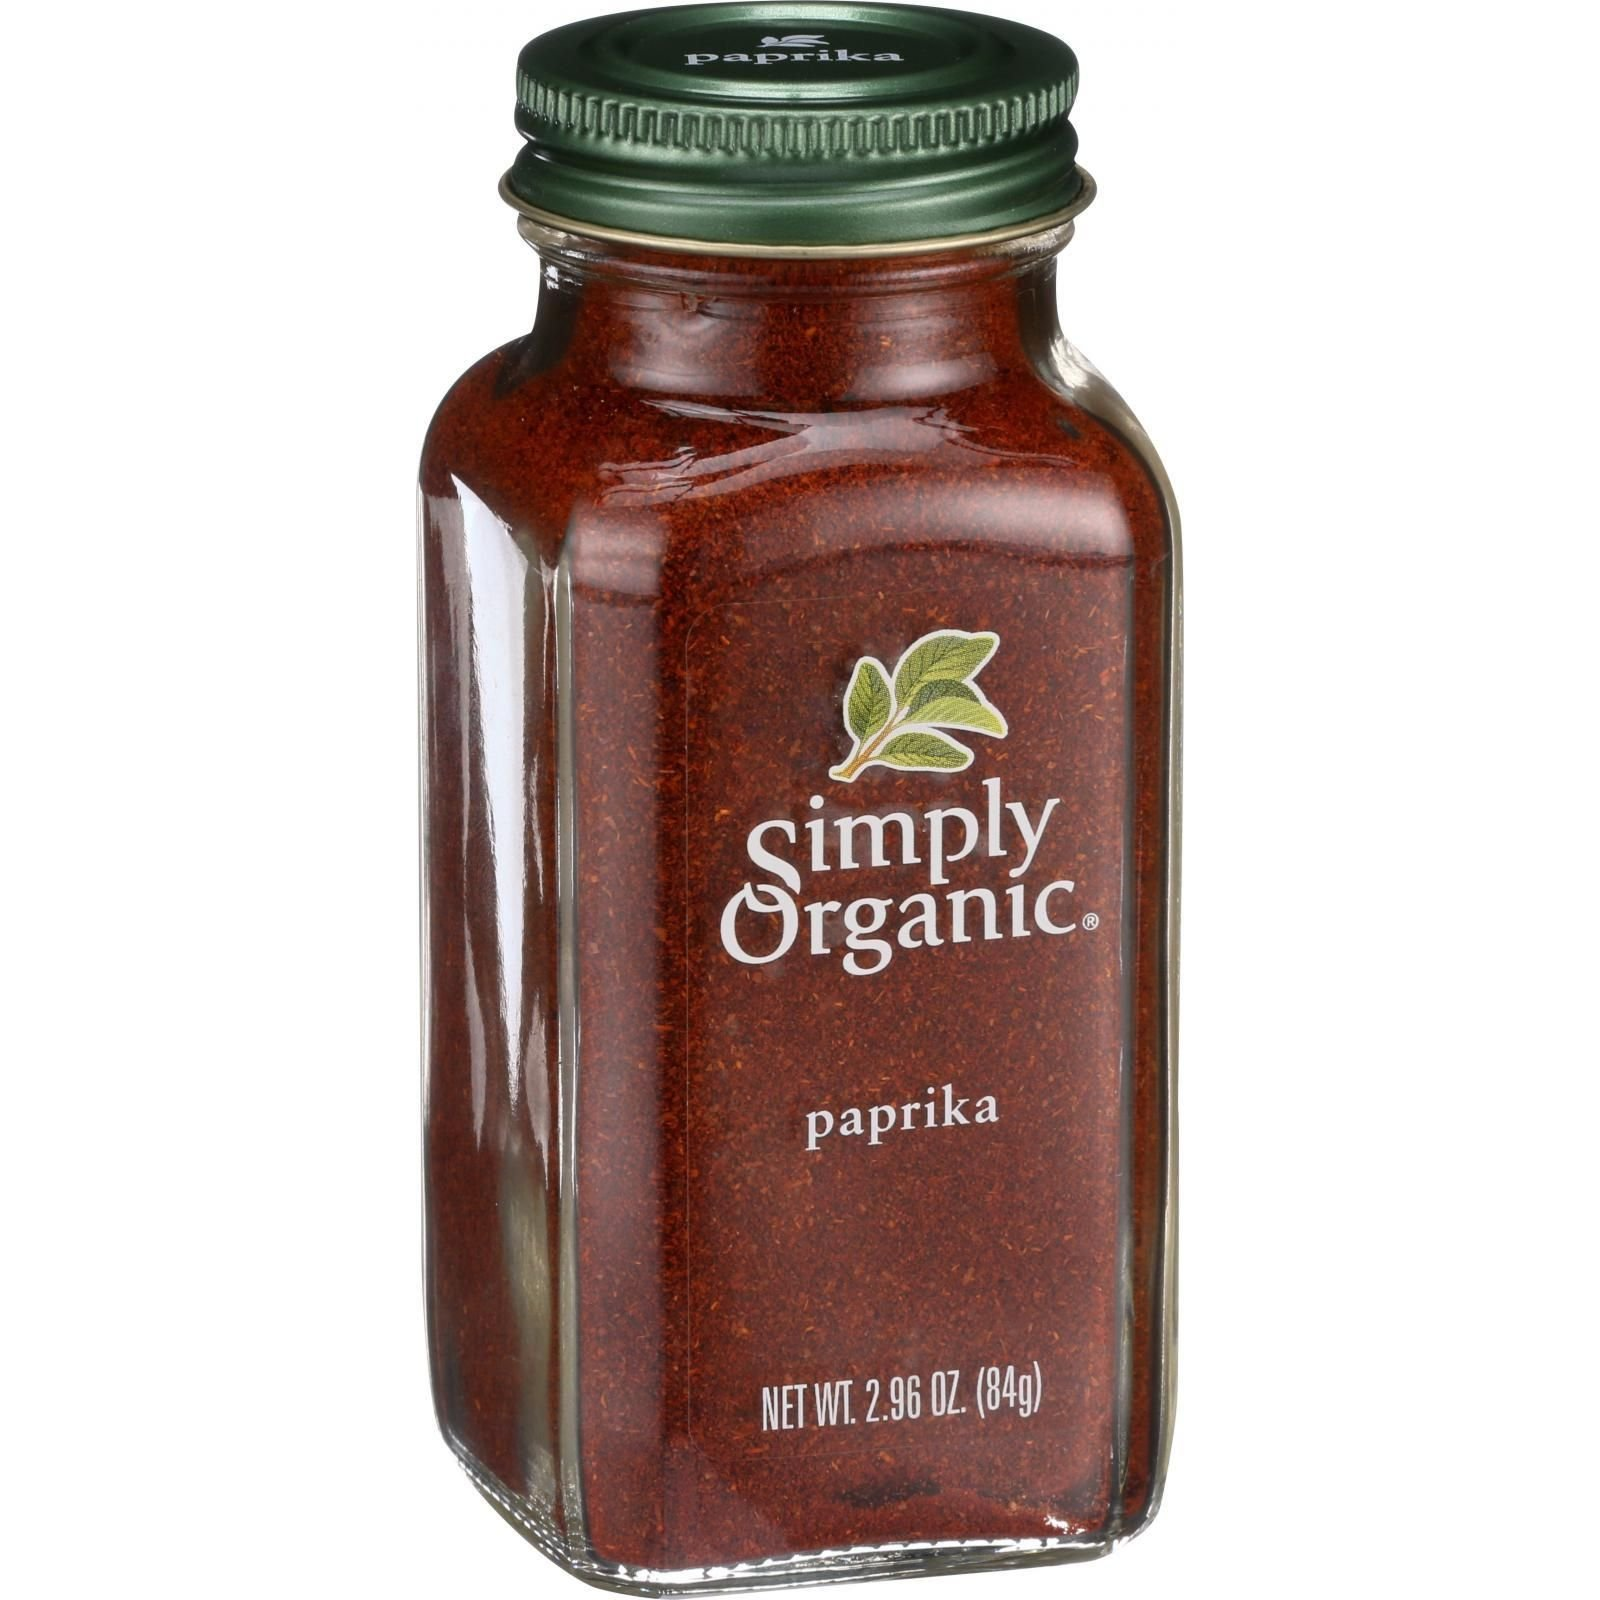 Simply Organic - Organic Ground Paprika - 2.96 oz - Kosher - From Israel